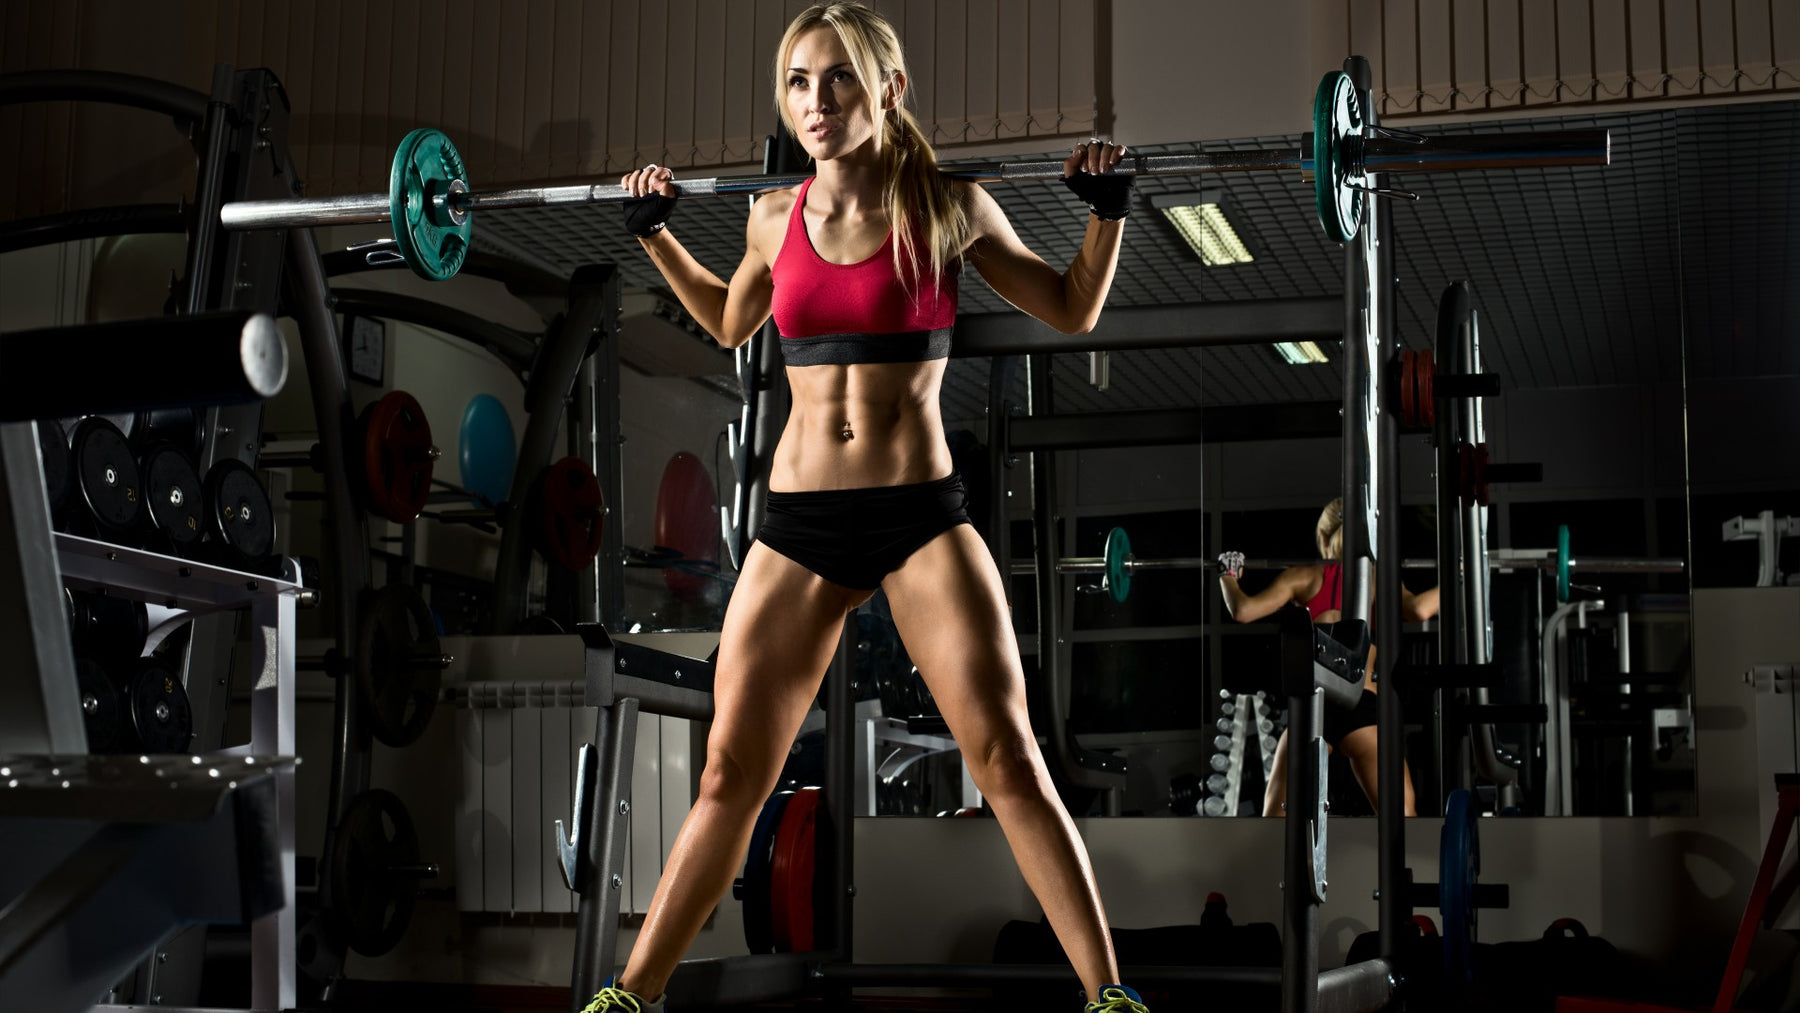 Female Fitness Competitors - 5 Things You Need to Know